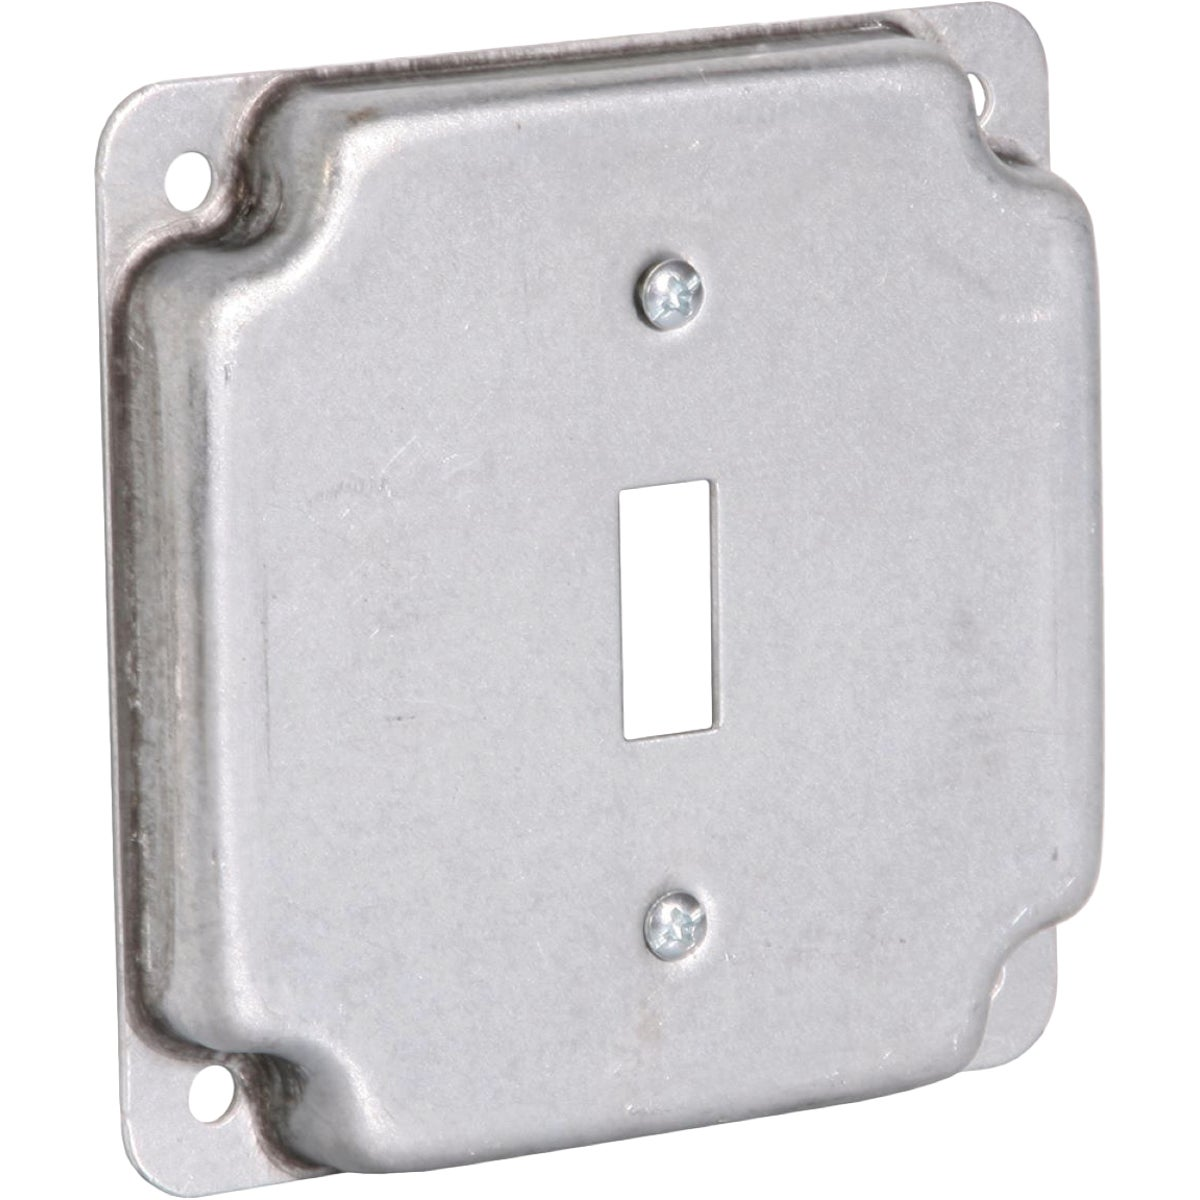 "4"" SQ 1-SWITCH BOX COVER"